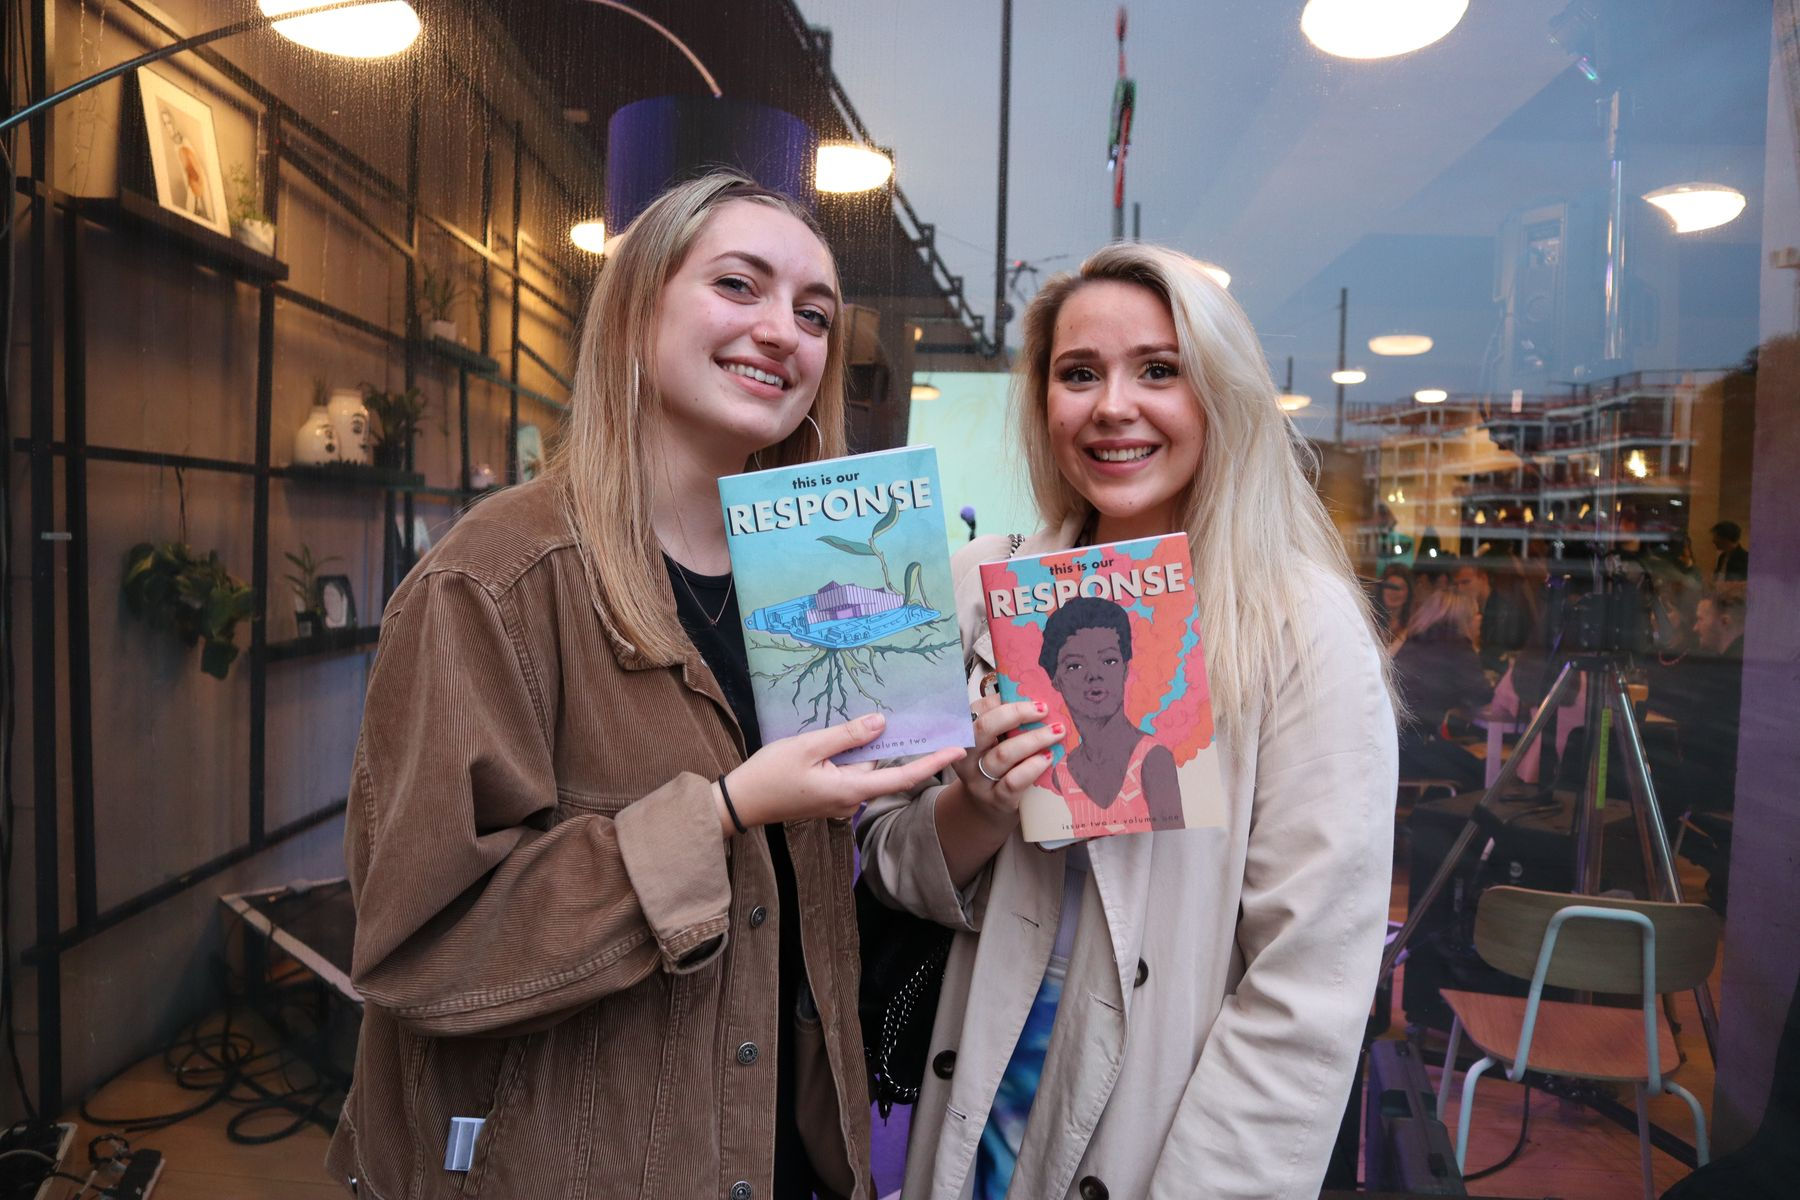 Students holding copies of the RESPONSE publication